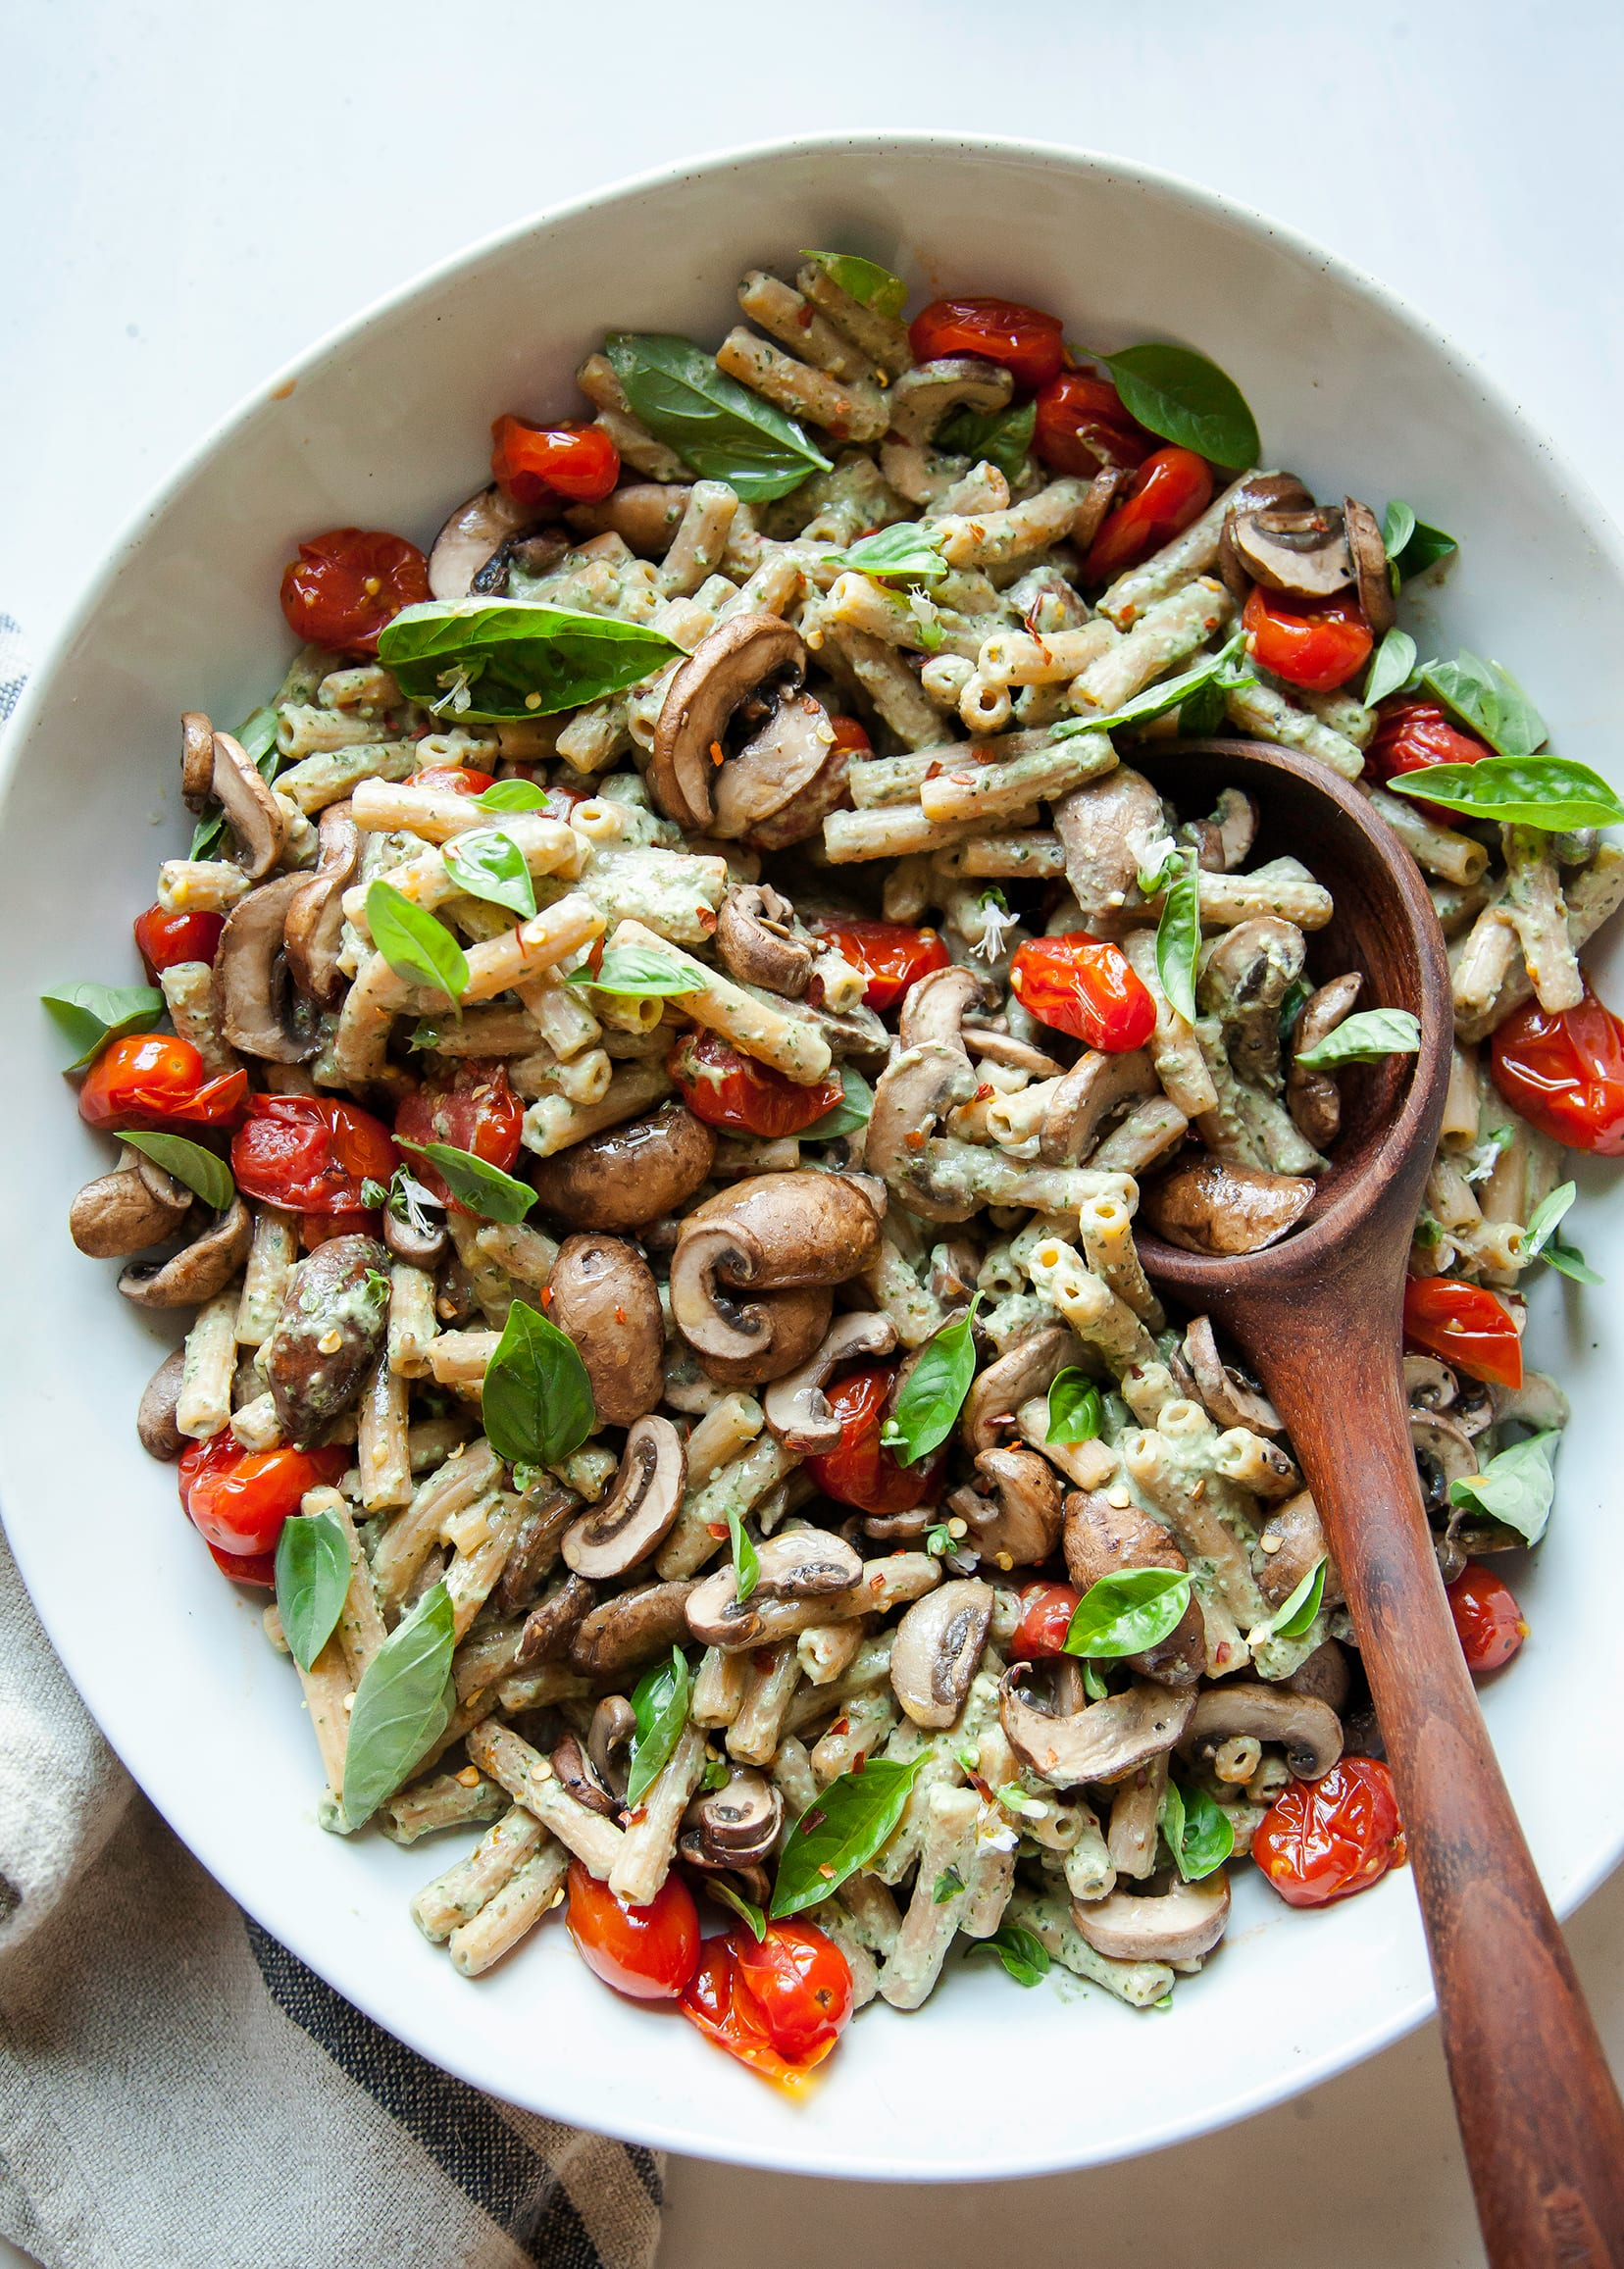 BASIL TAHINI PASTA WITH BURST TOMATOES & MUSHROOMS - The First Mess